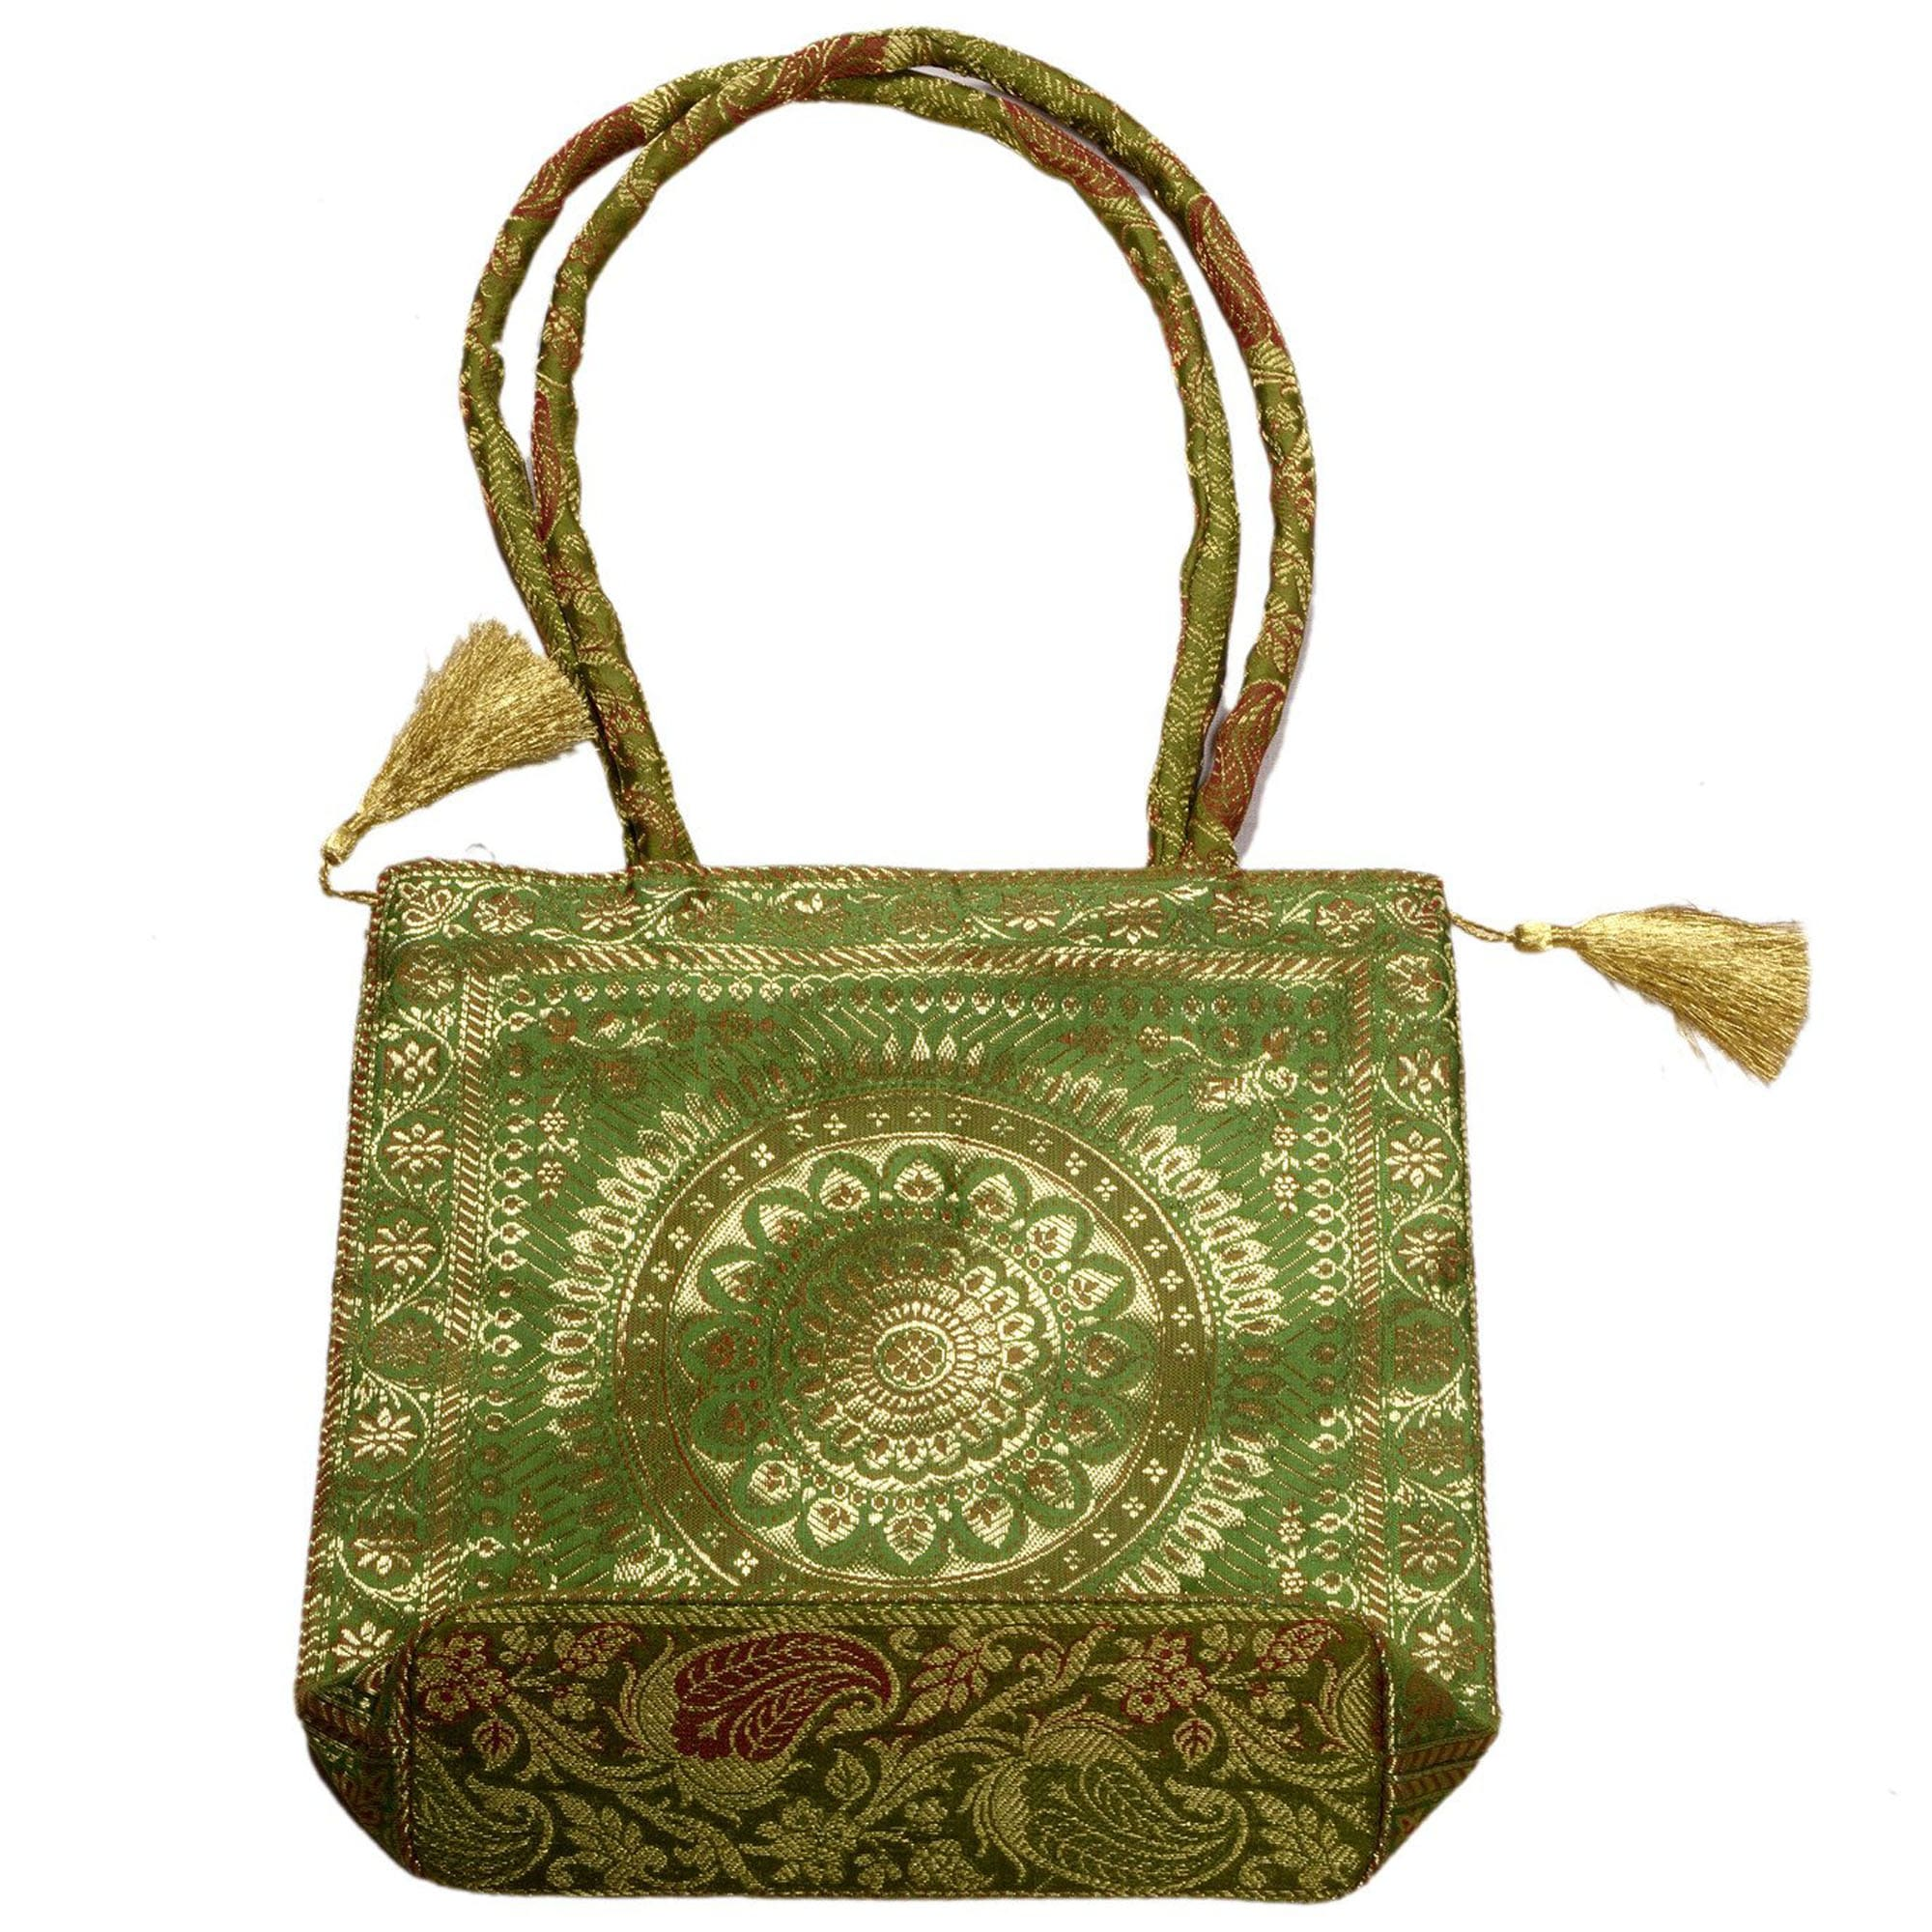 Jodhpur Green Indian Dress Bag 3